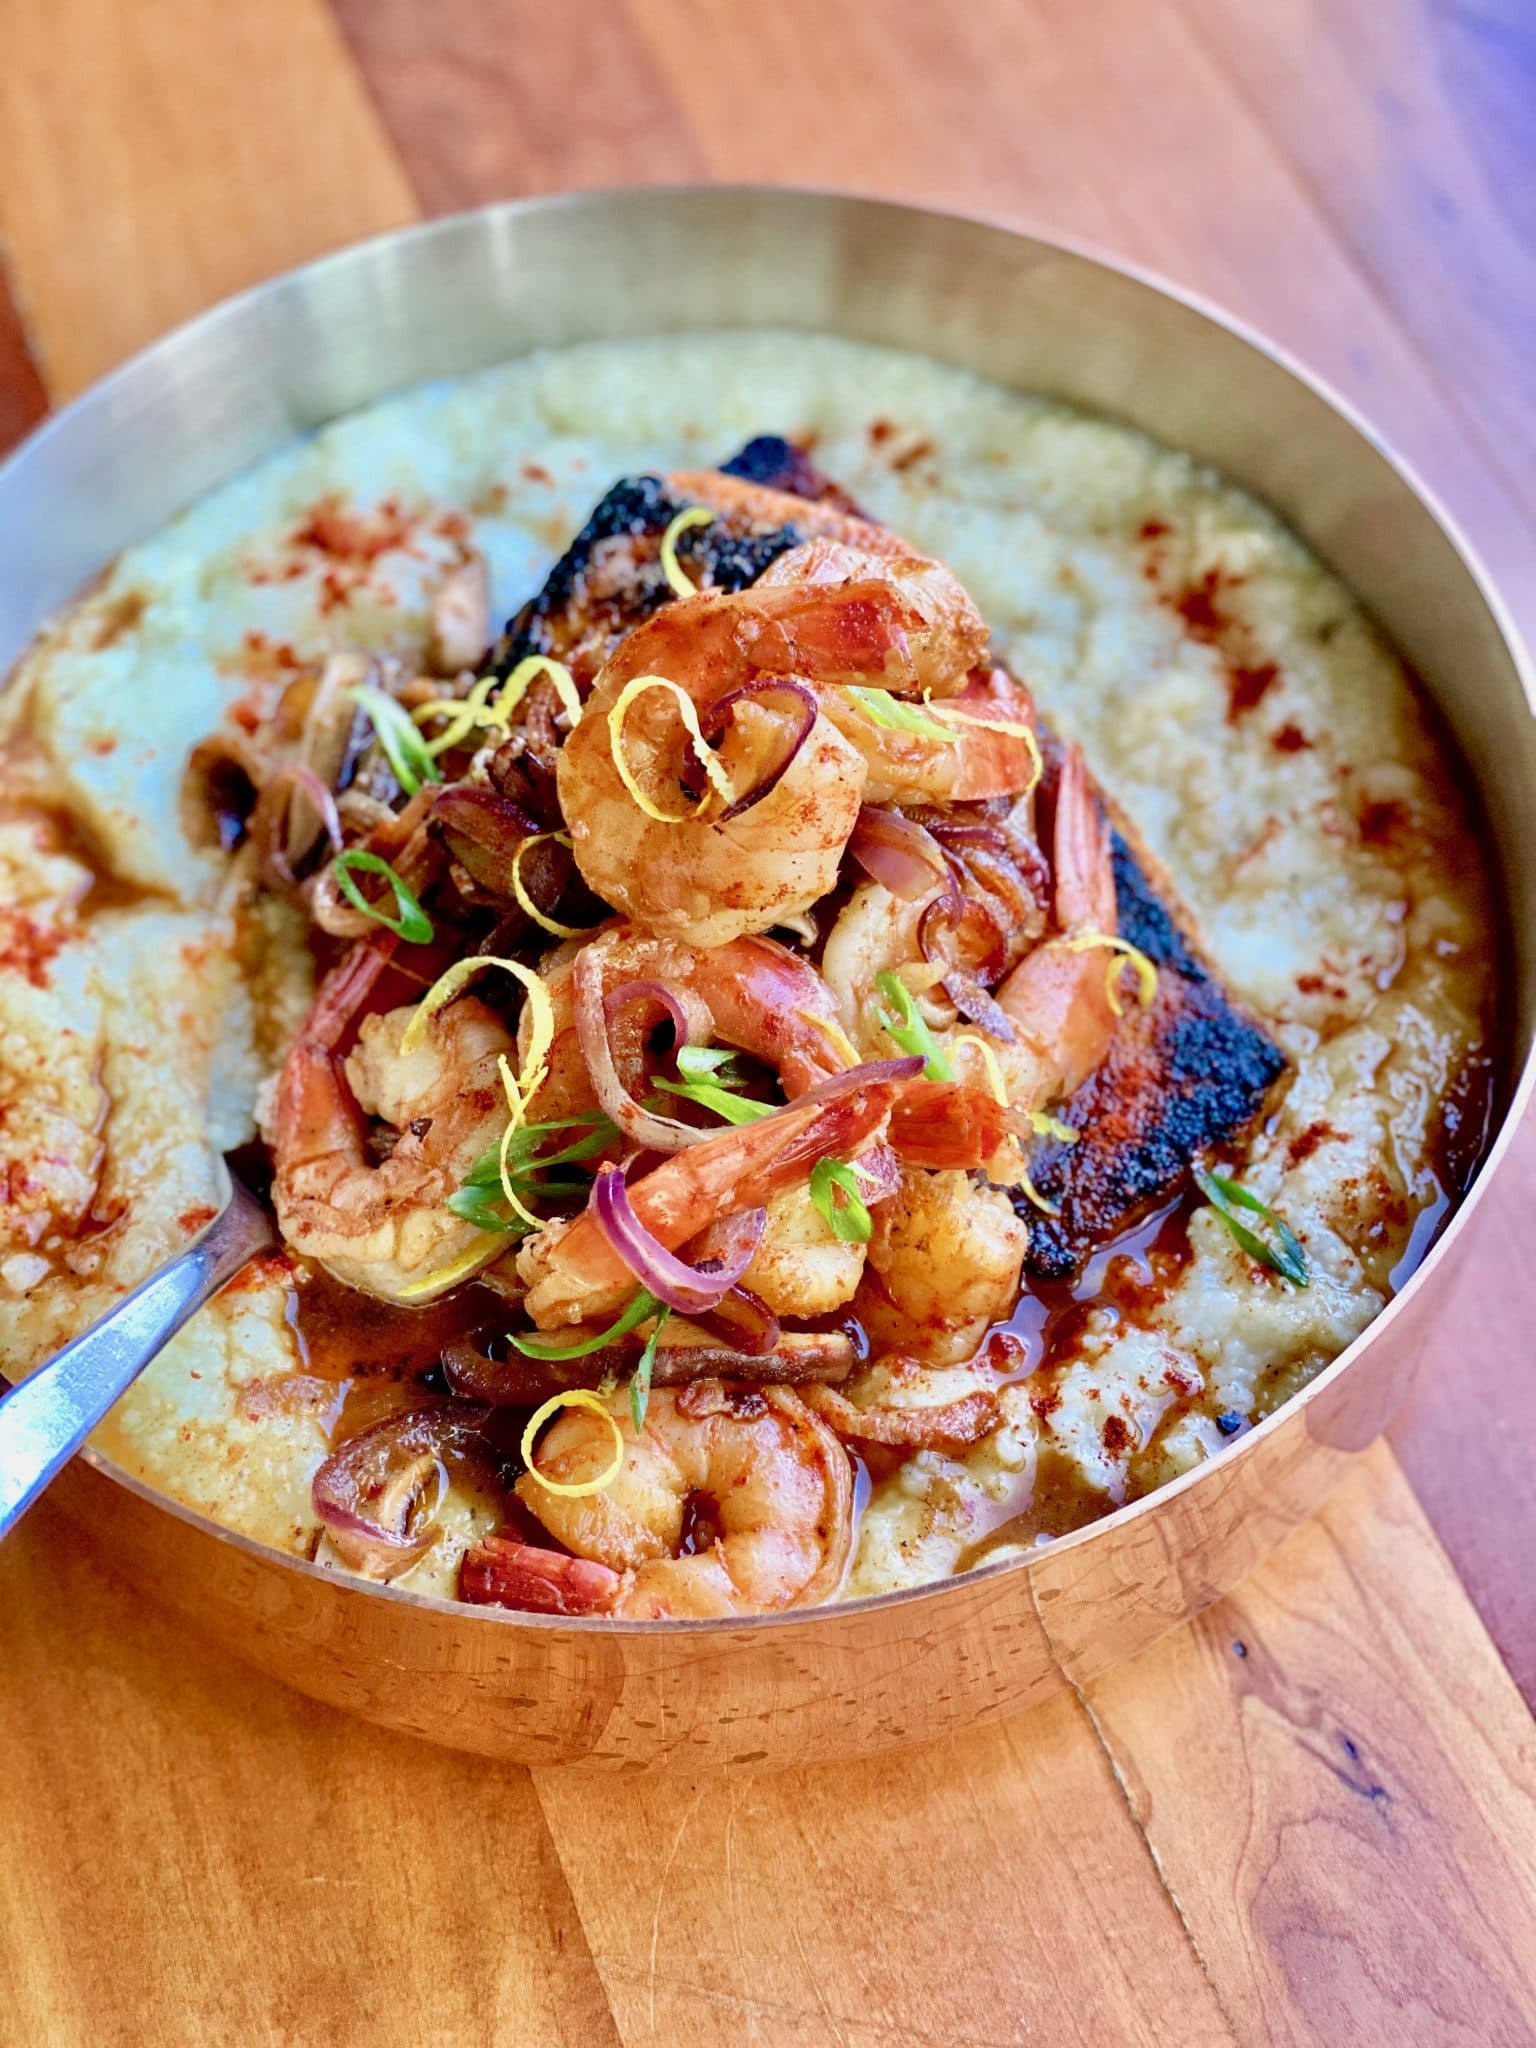 Blackened Salmon with Shrimp and Grits by Chef Emily Ellyn